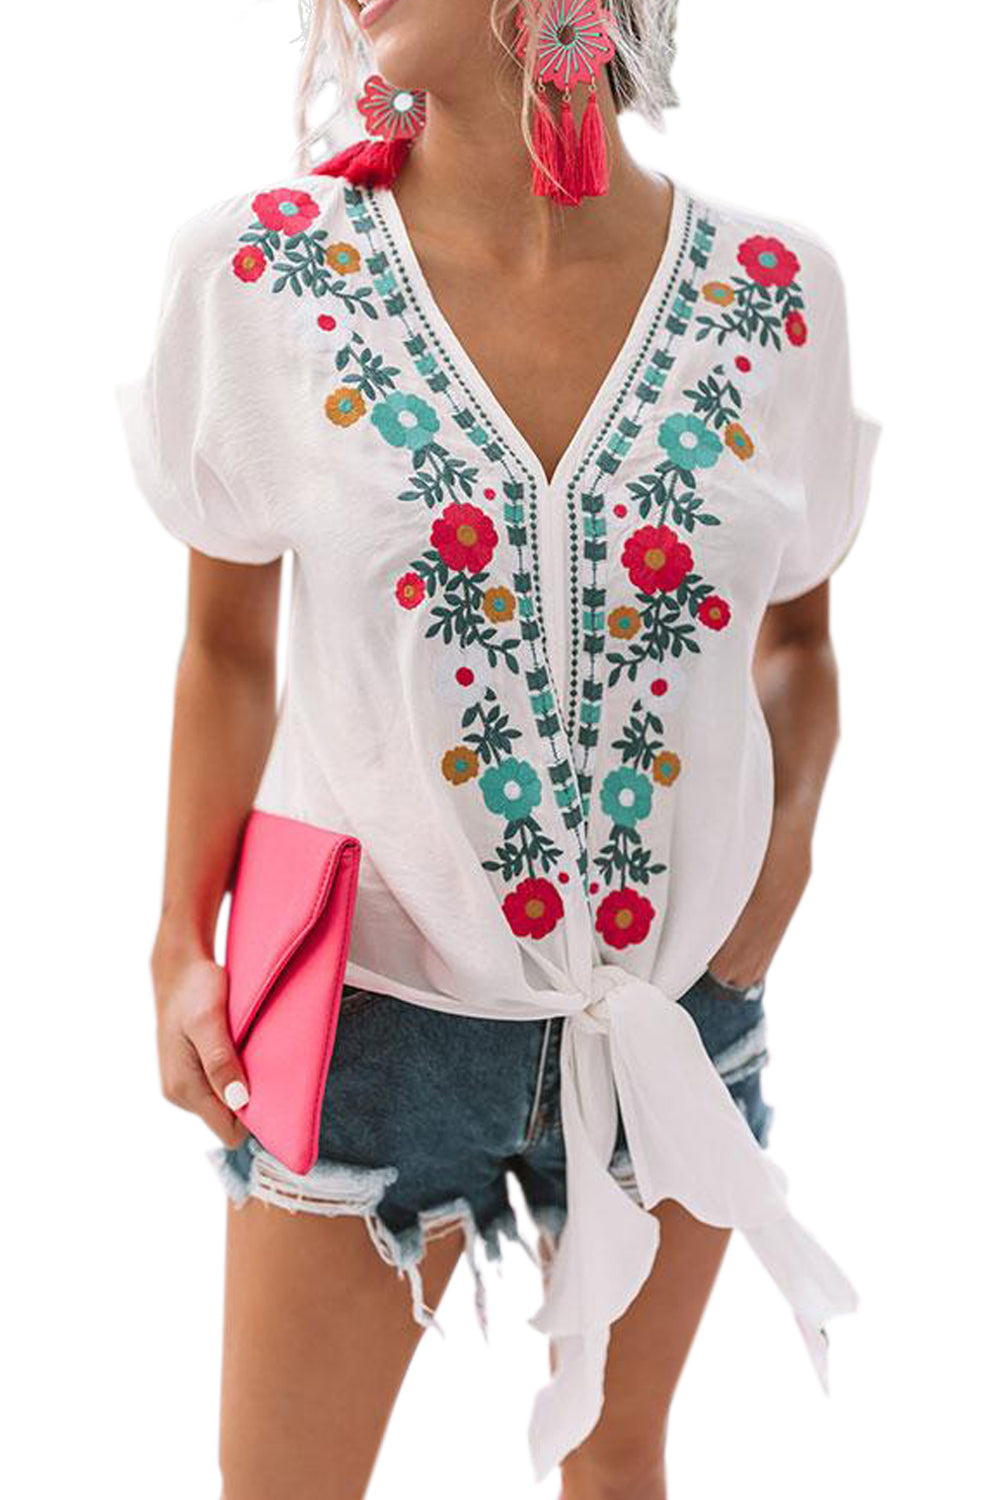 White Floral Printed Tie Top